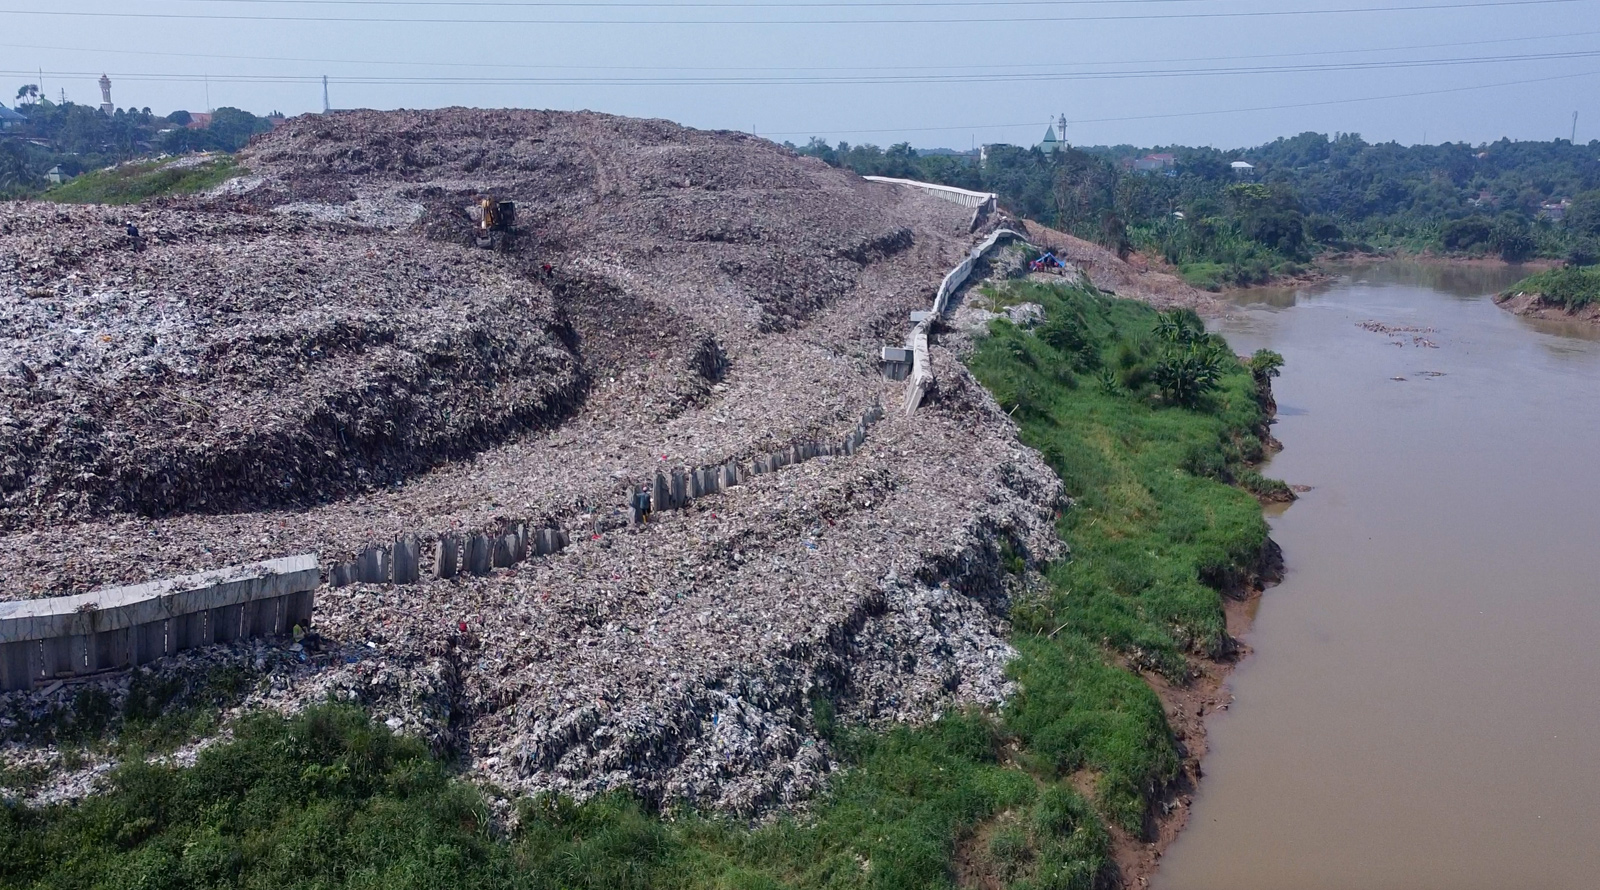 An aerial view of a waste landslide at the Cipeucang landfill in South Tangerang, Indonesia.